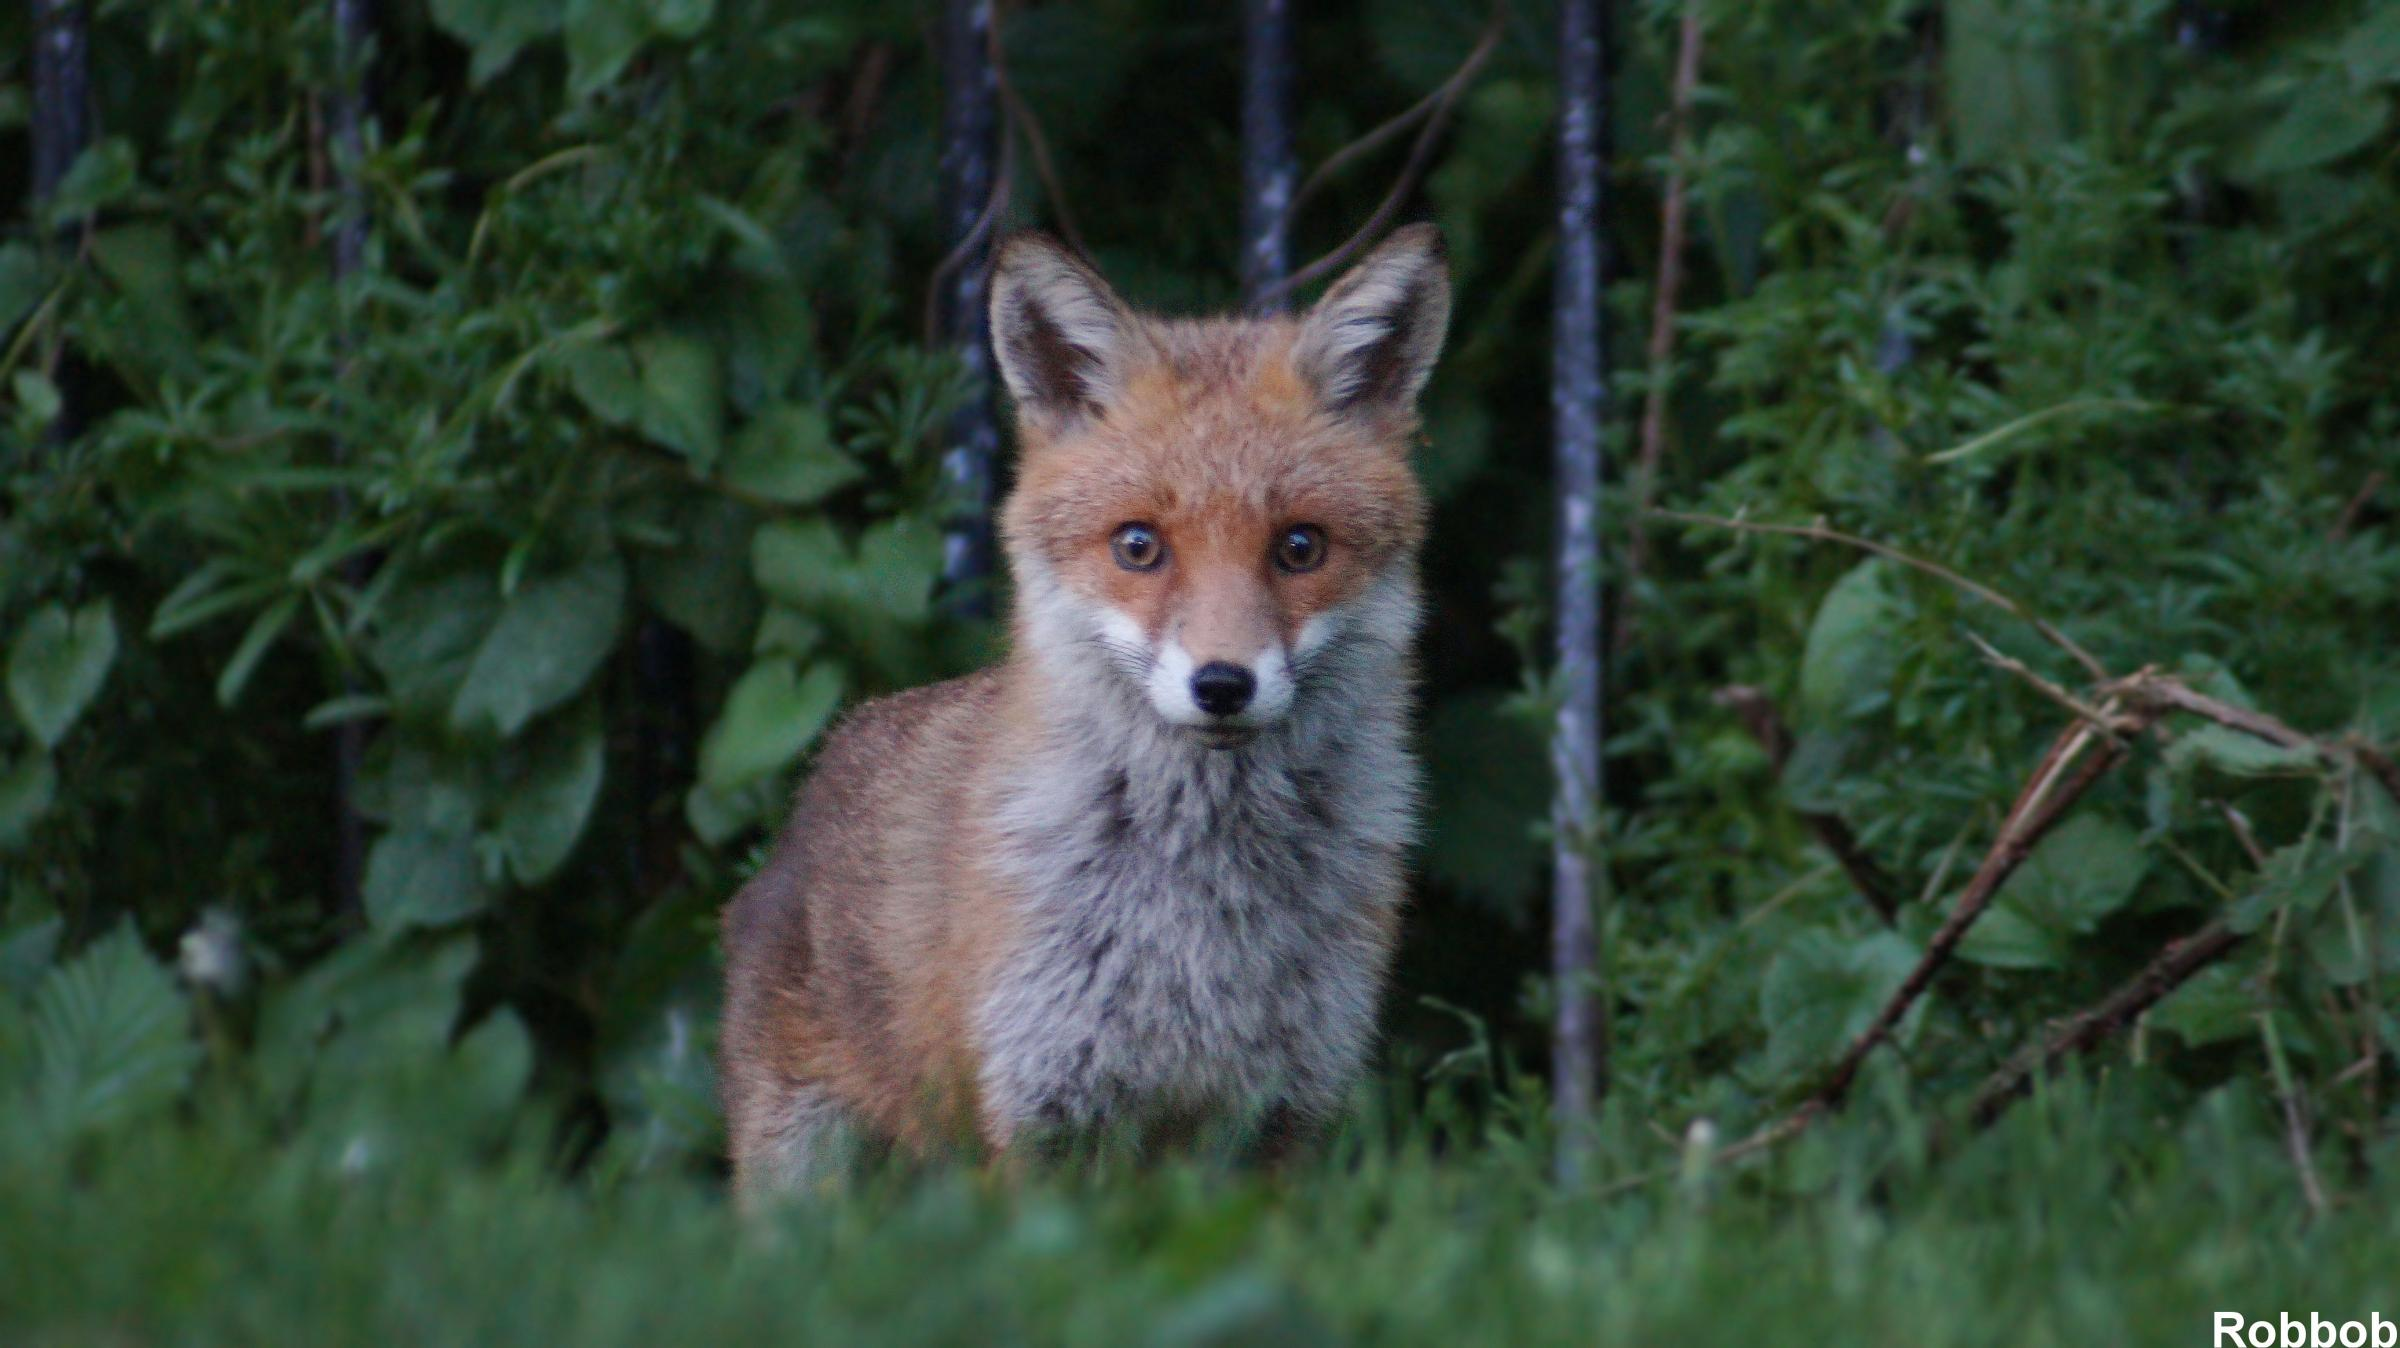 Buccleuch members accused of breaching fox hunting laws